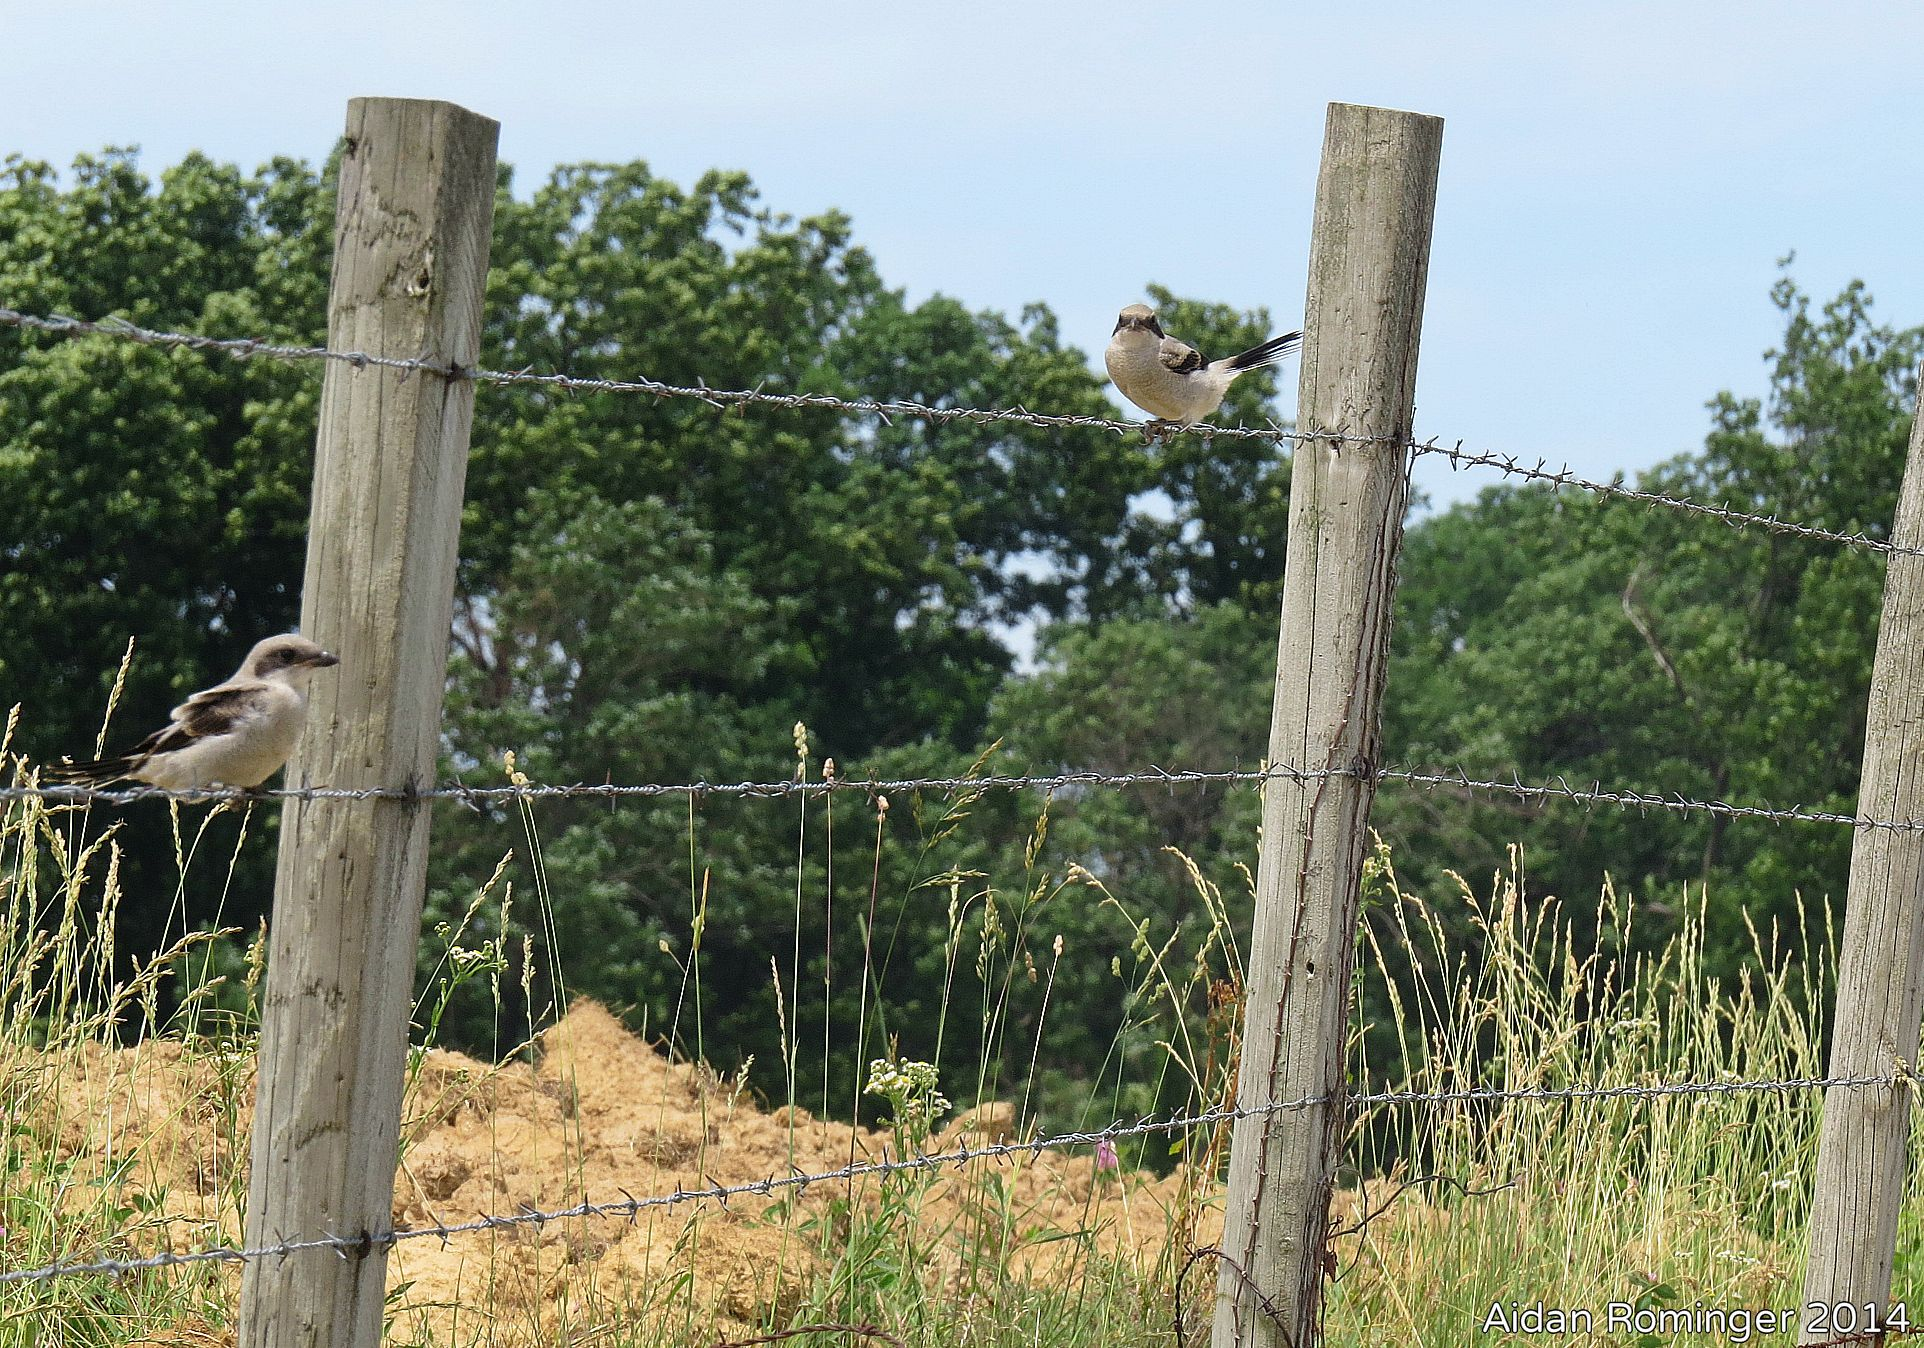 Barbed wire fencing creates many potential impaling sites that can be used by shrikes, like the fledglings pictured here